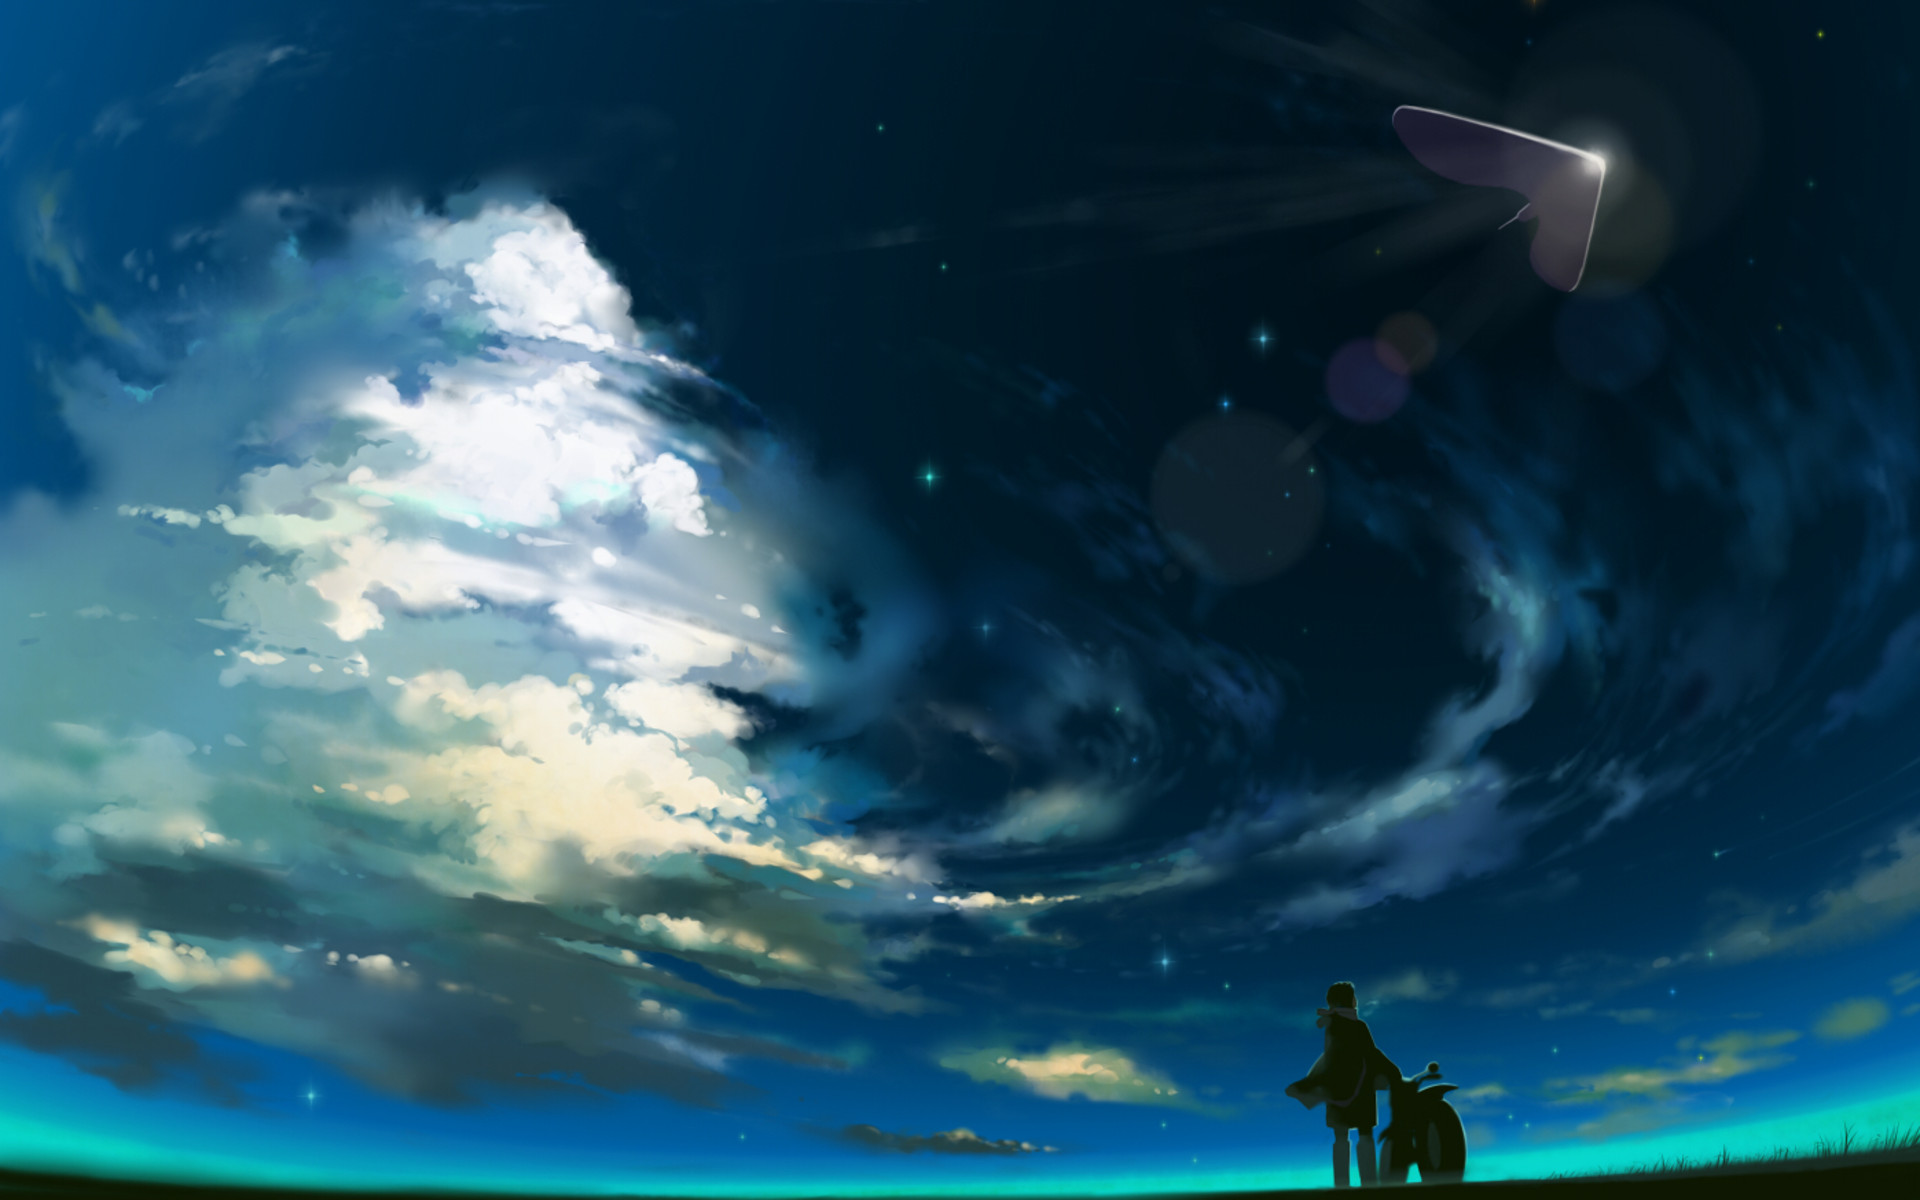 Anime Backgrounds Wallpapers (75 Wallpapers)